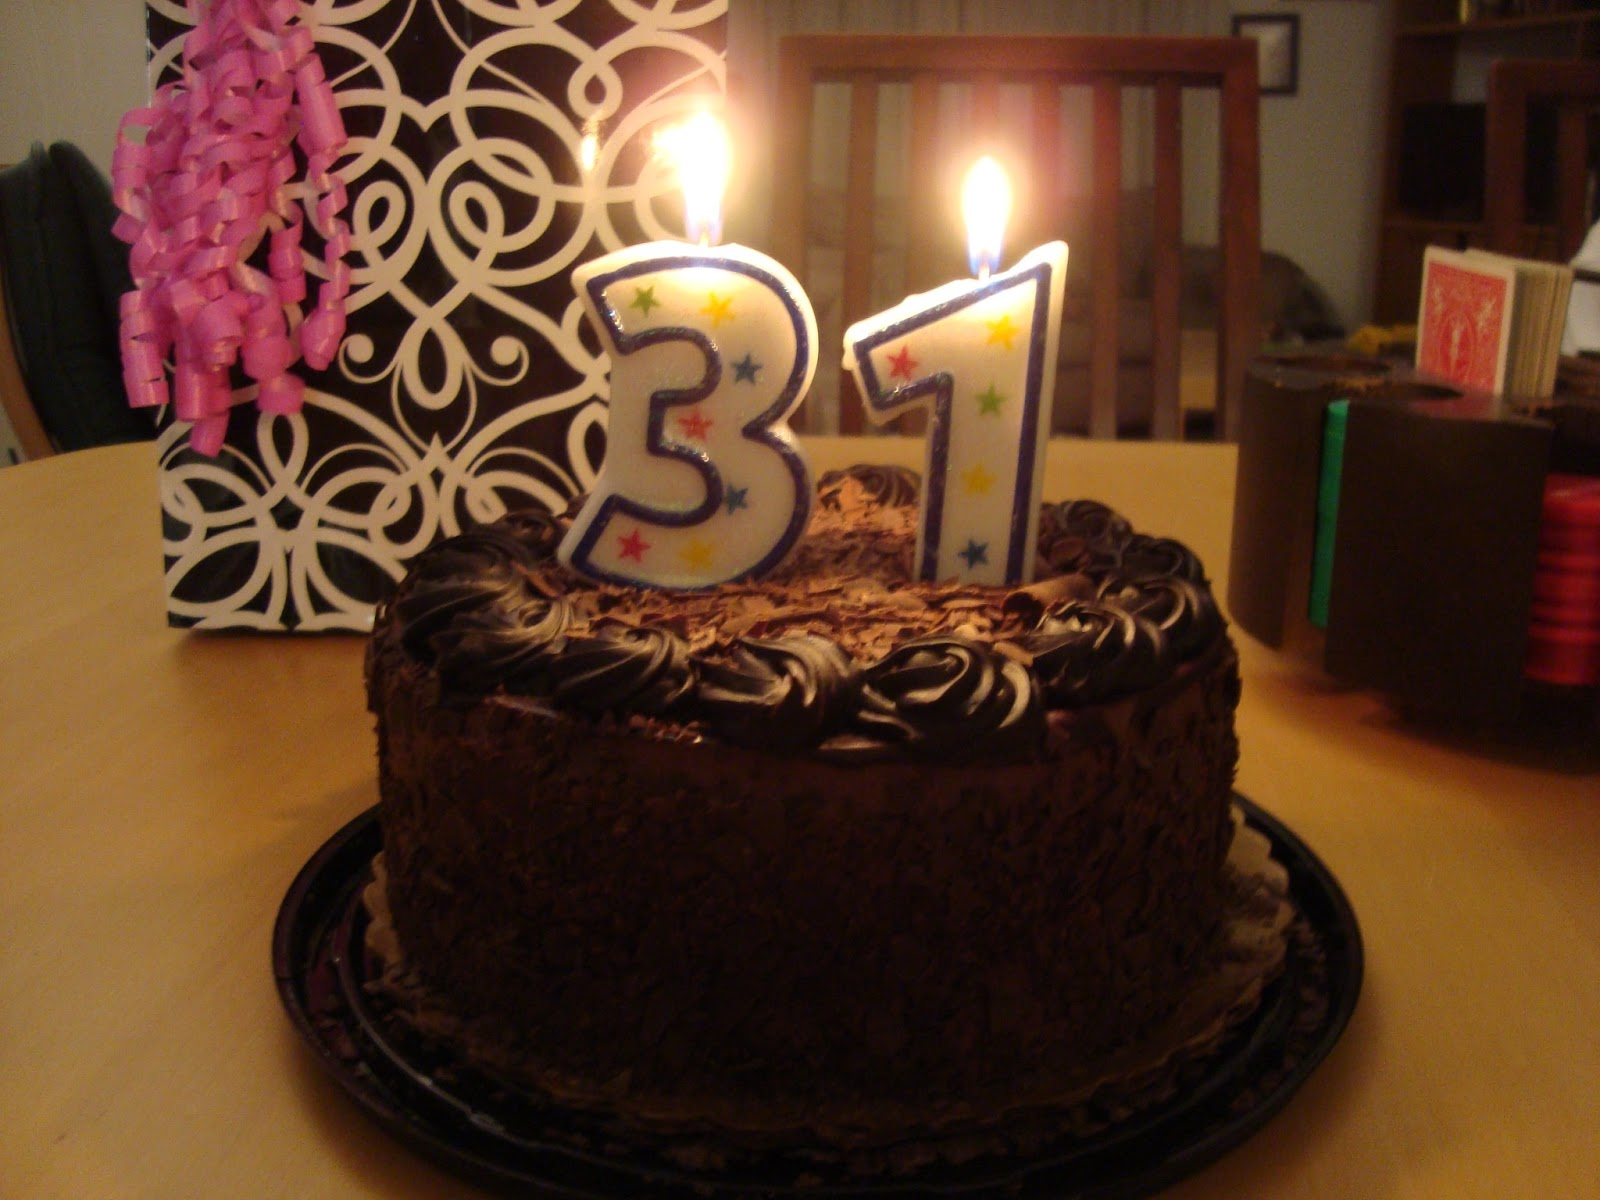 And The Kids Surprised Me With A Really Yummy Chocolate Birthday Cake I Love 31 On